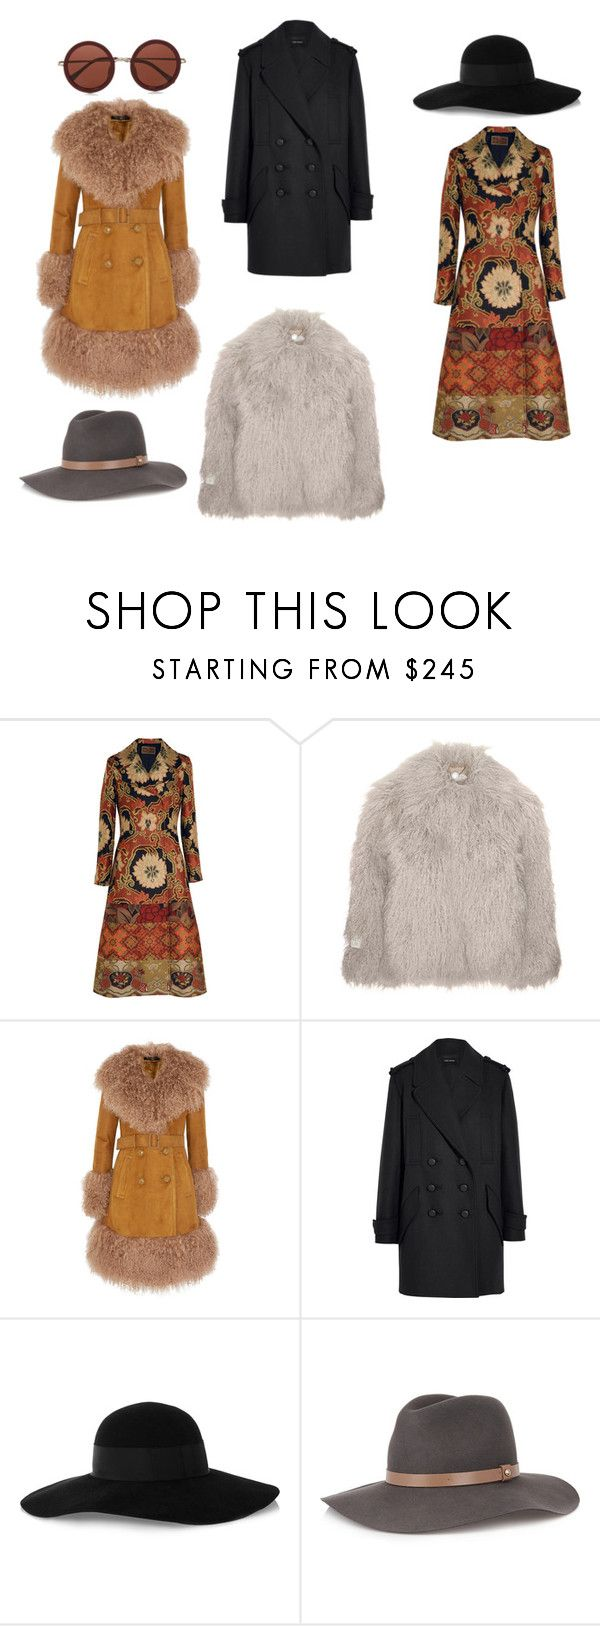 """Net-a-porter sales"" by vicdra on Polyvore featuring Etro, STELLA McCARTNEY, Gucci, Isabel Marant, Eugenia Kim, rag & bone and The Row"